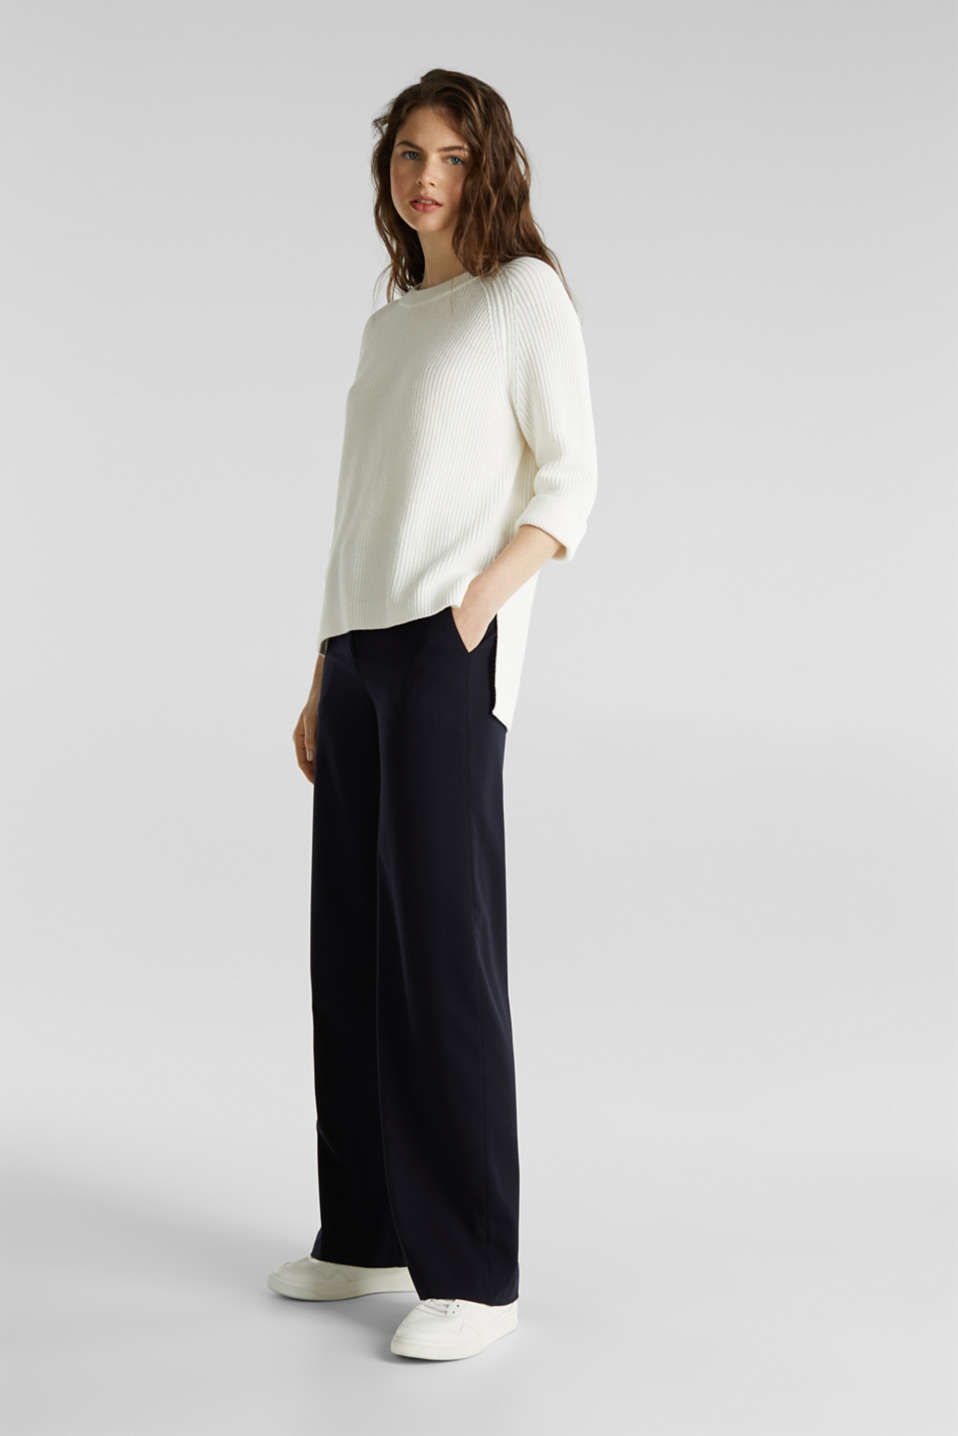 Jumper with a high-low hem, 100% cotton, OFF WHITE, detail image number 1